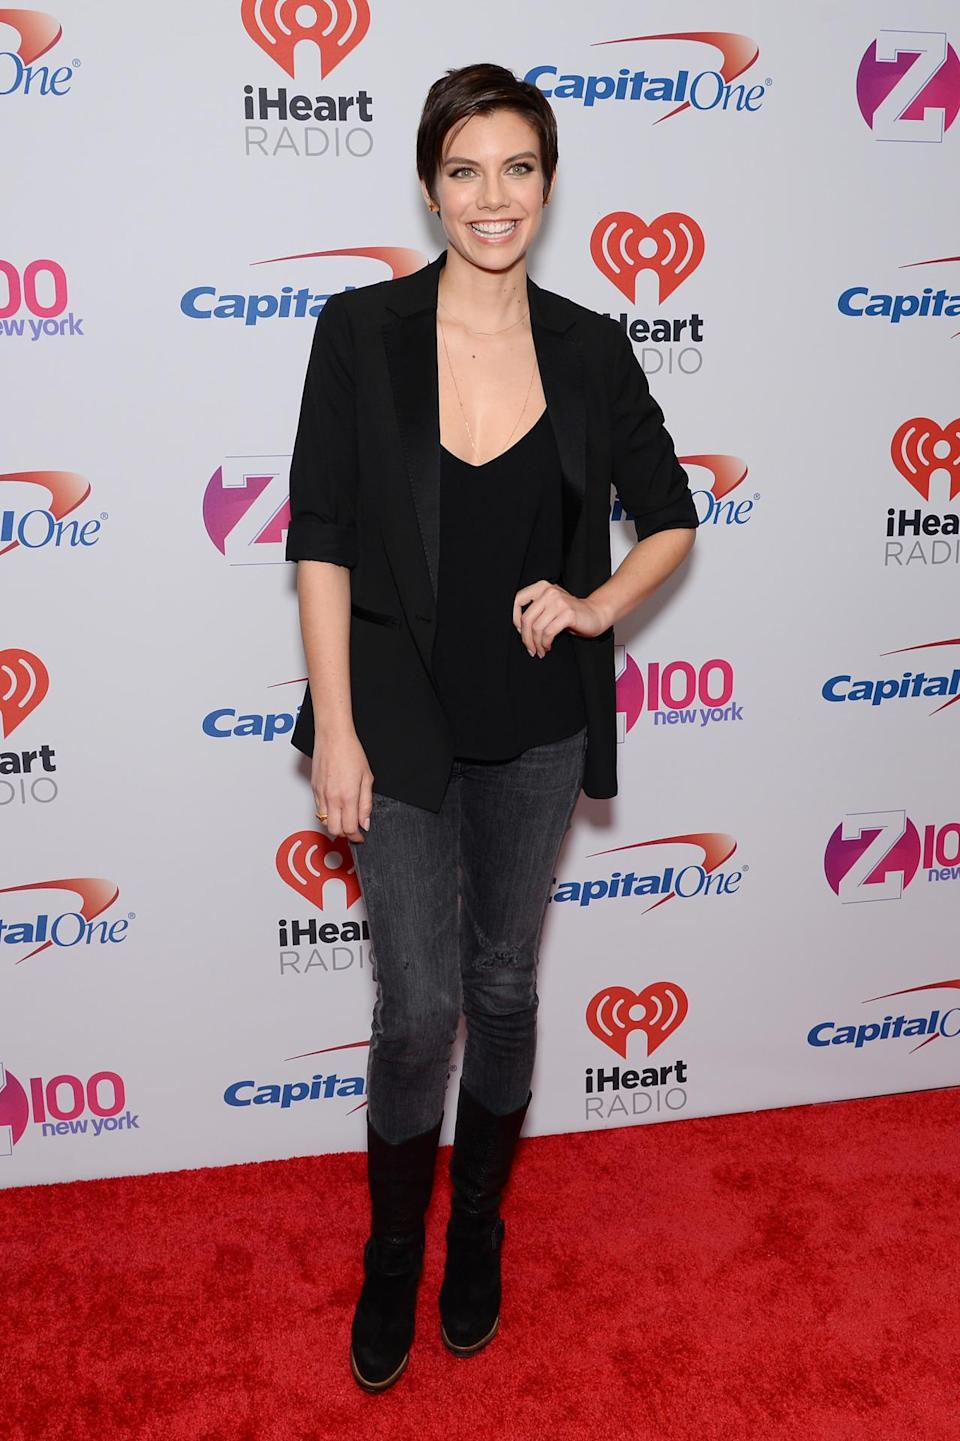 <p>With nary a zombie in sight, the <i>Walking Dead</i> star rocked all black save for her grey, distressed jeans, looking like a vision with her cropped cut.</p>